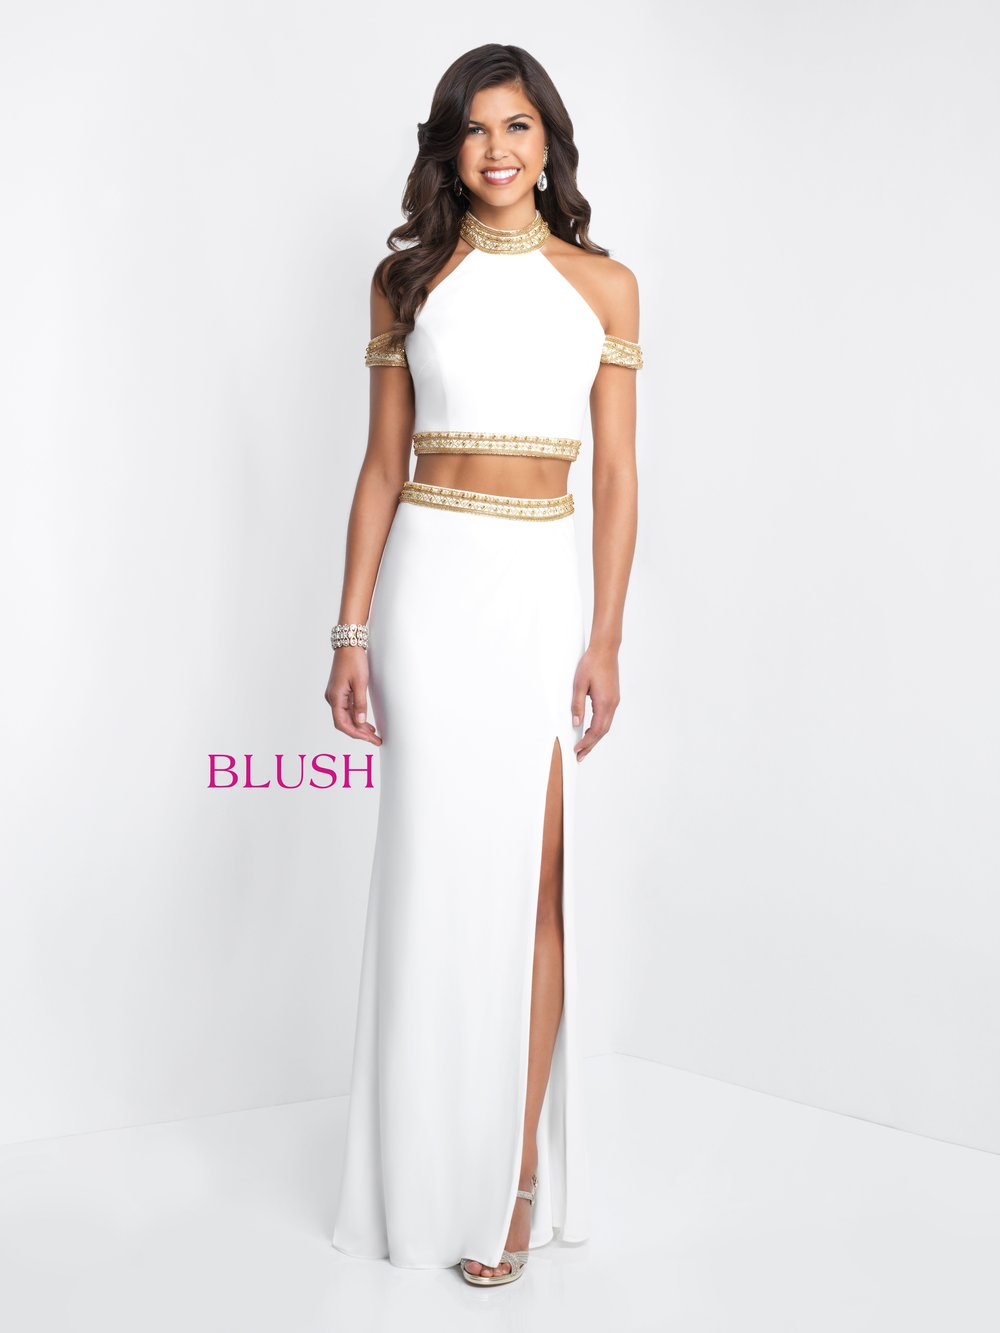 Blush // Priced $350-$550